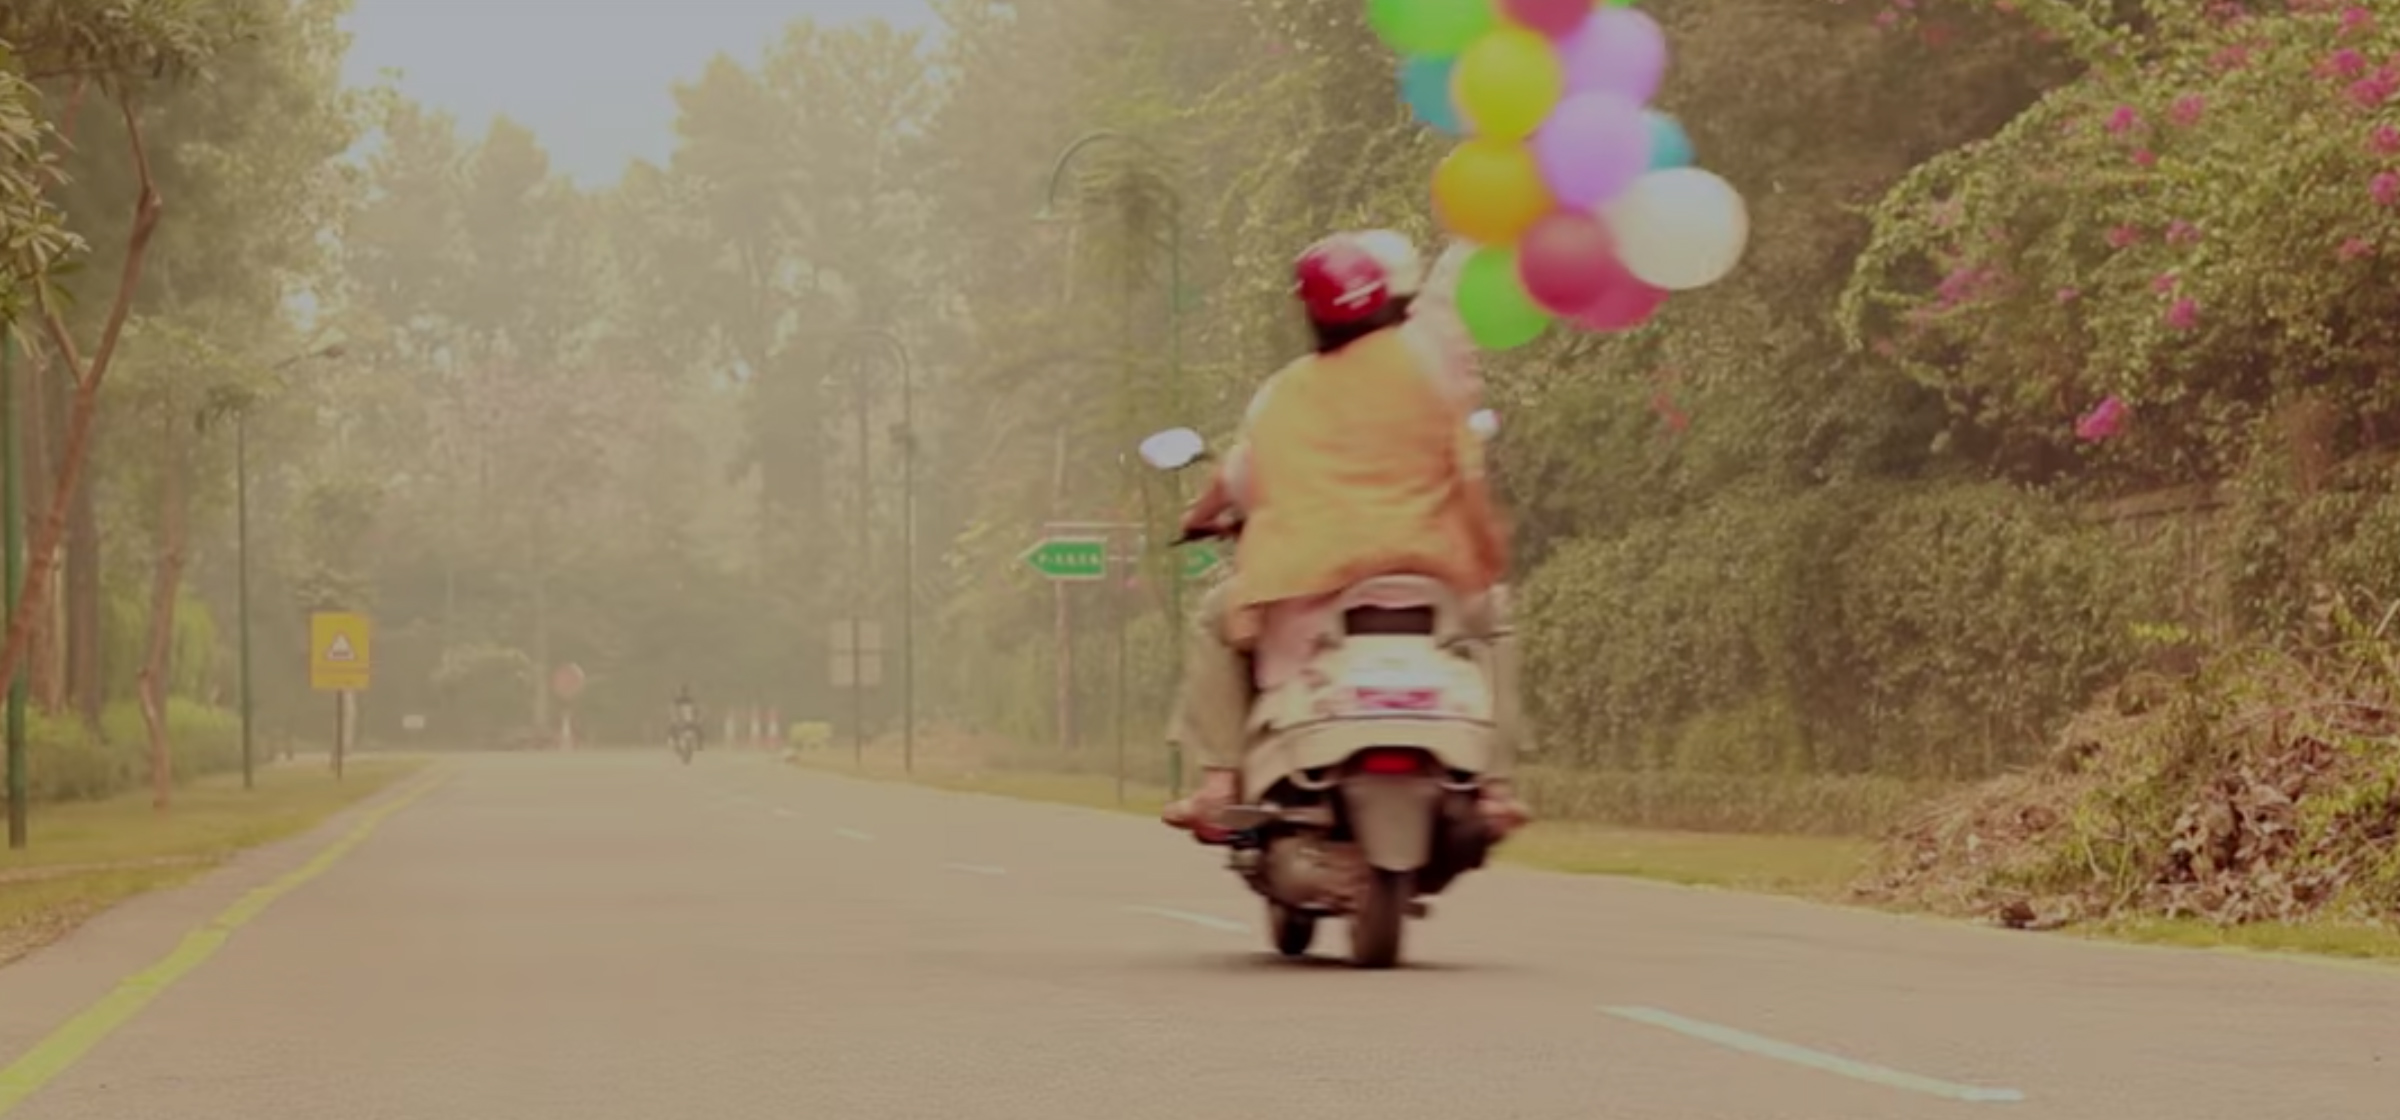 man on a motorcycle with a bouquet of balloons